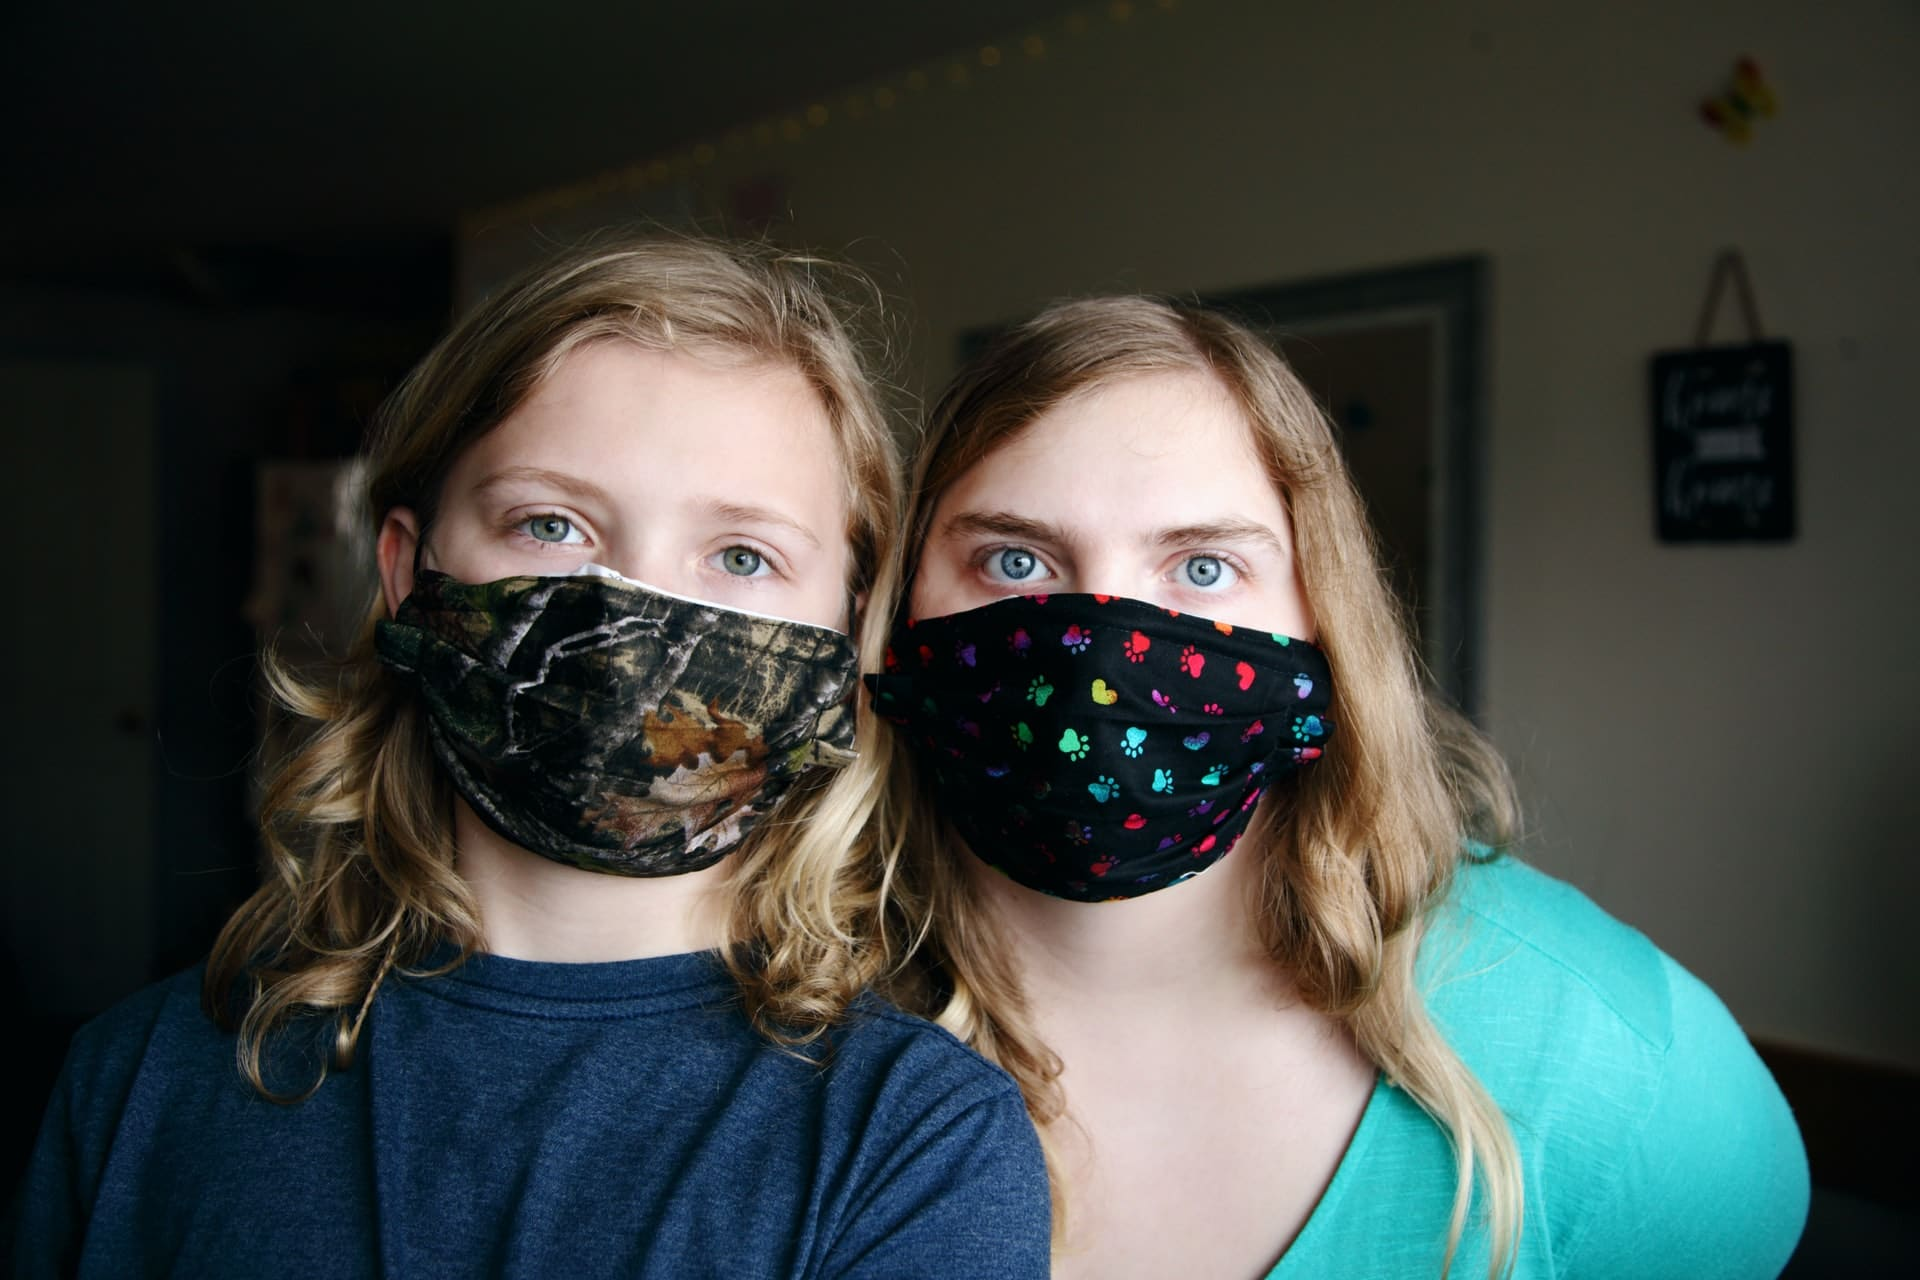 mom face mask - 7 Everyday Accessories for the New Normal